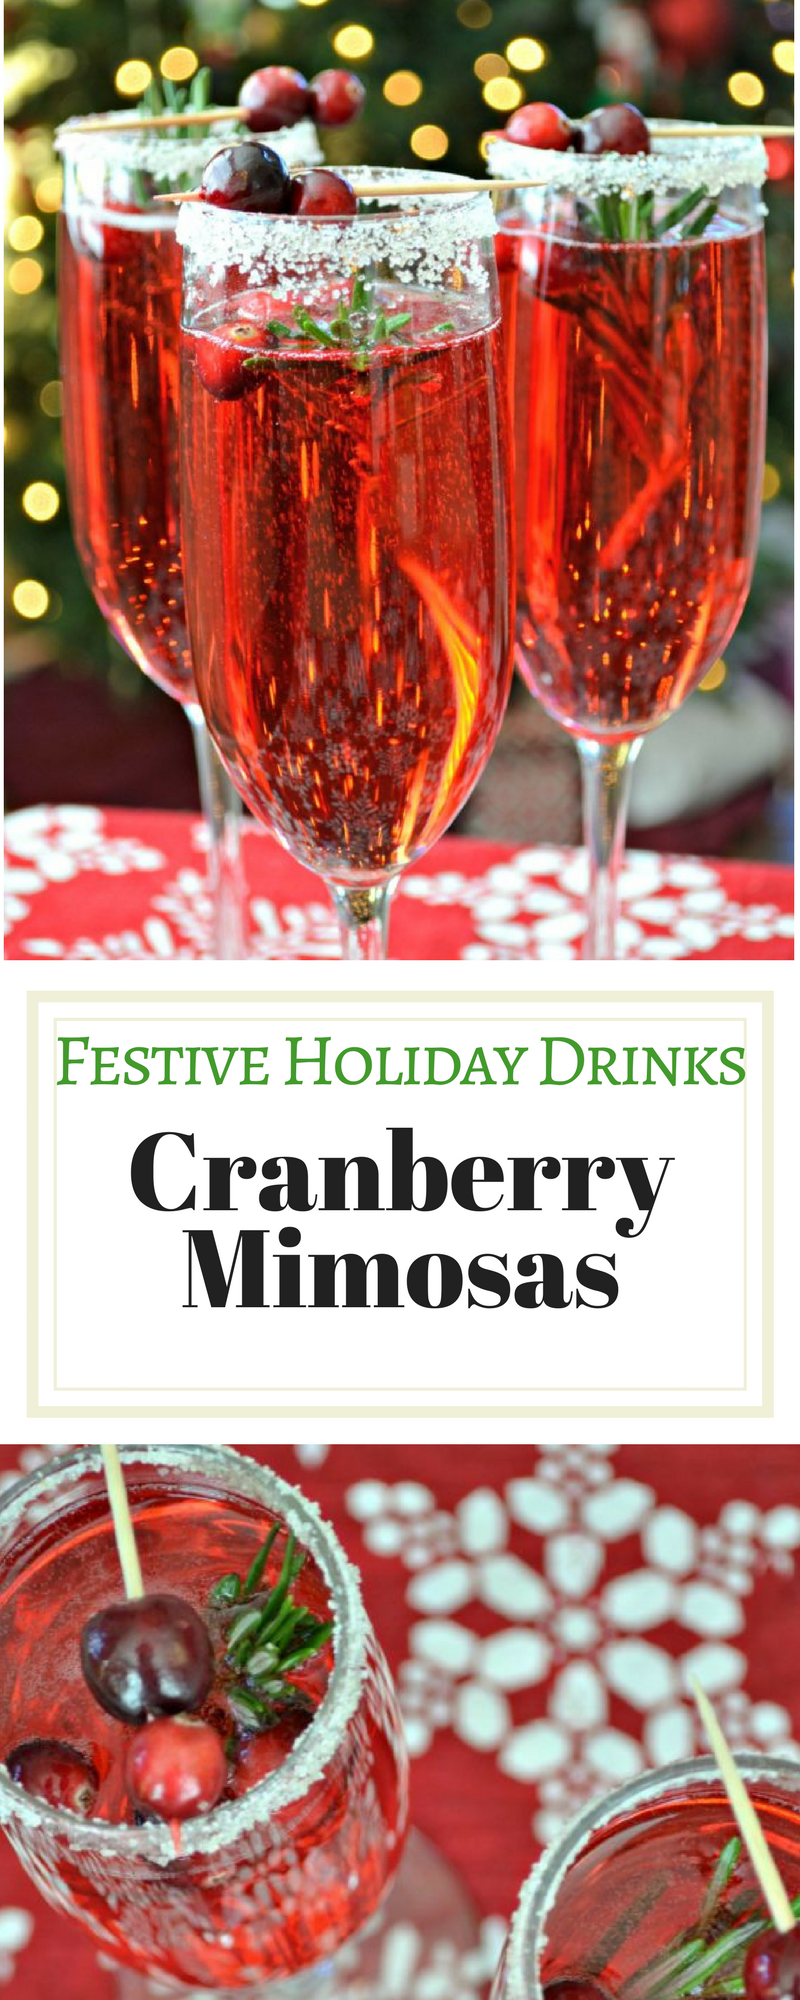 Festive Holiday Drinks - Cranberry Mimosas